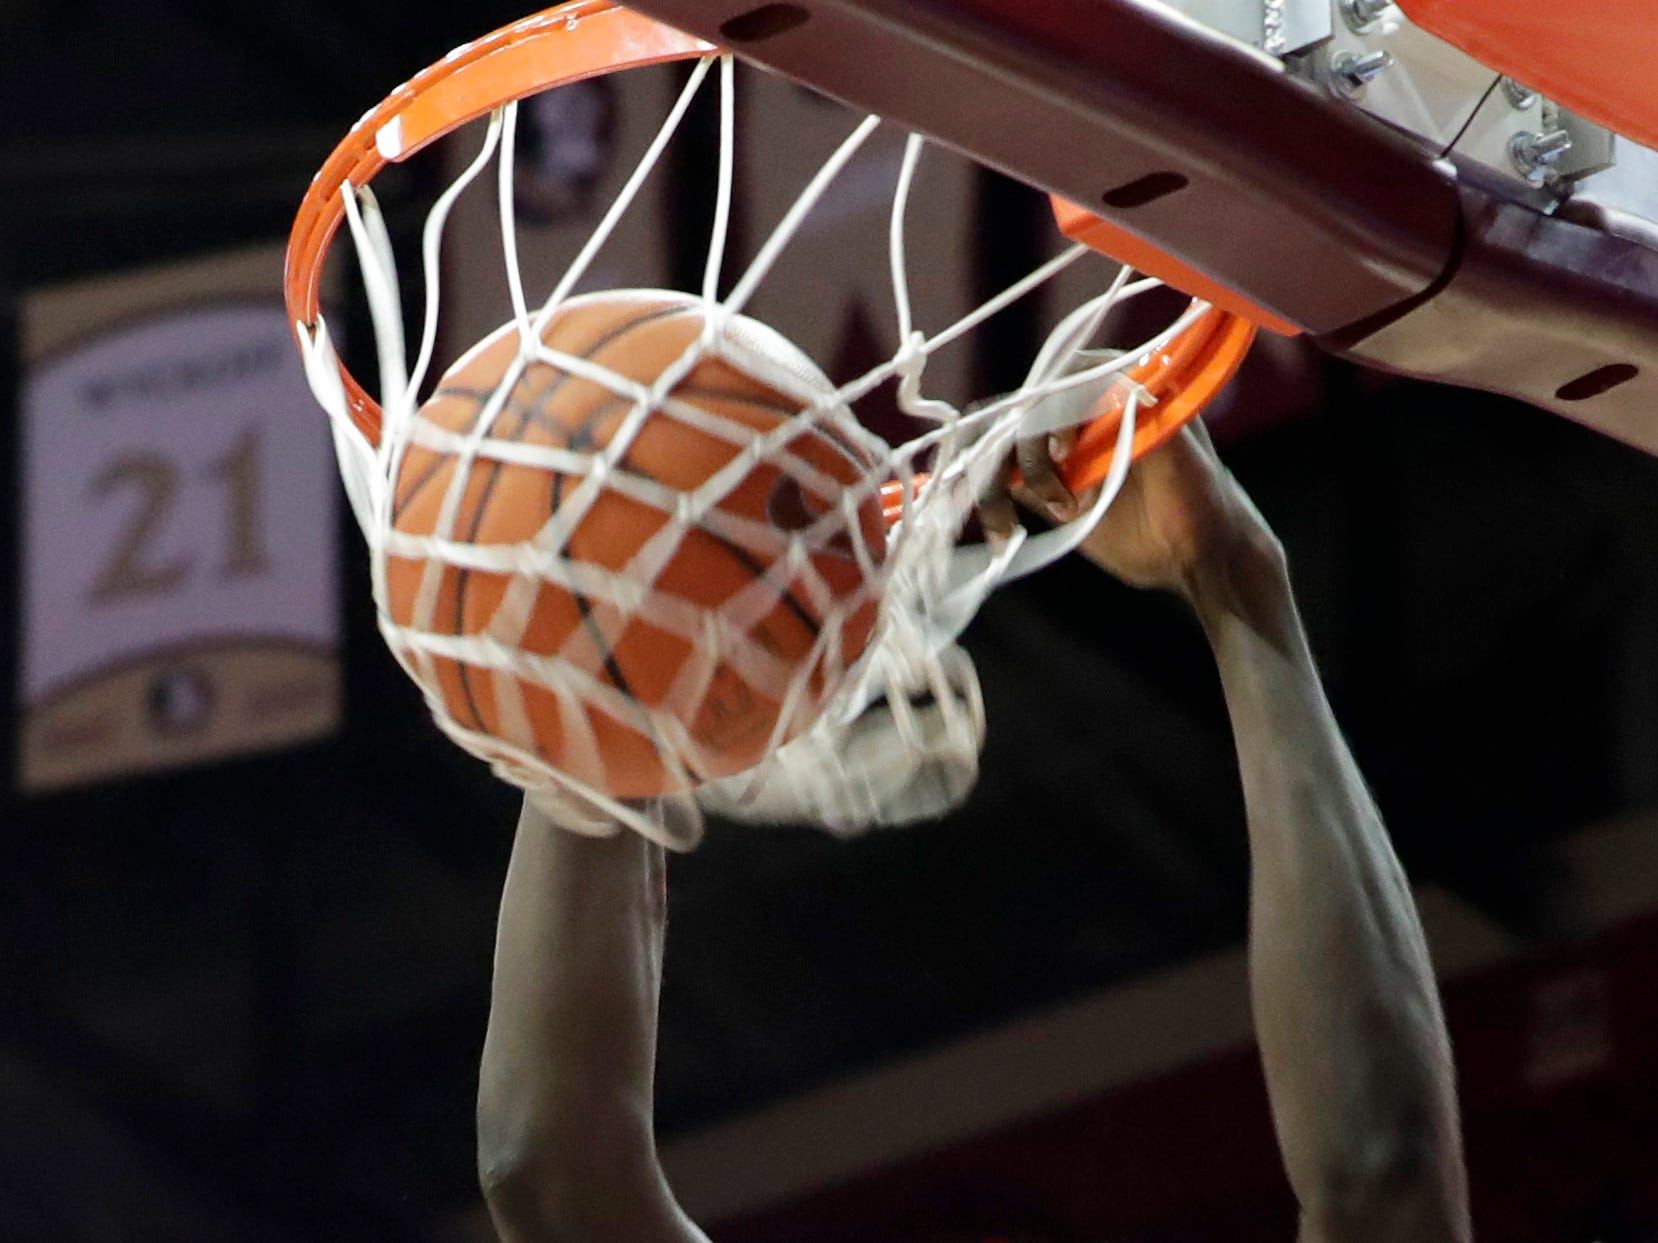 Florida State Seminoles center Christ Koumadje (21) dunks the ball to tie the game at half time 34-34 during a game between Florida State University and Southeast Missouri State University at the Donald L. Tucker Civic Center Monday, Dec. 17, 2018.